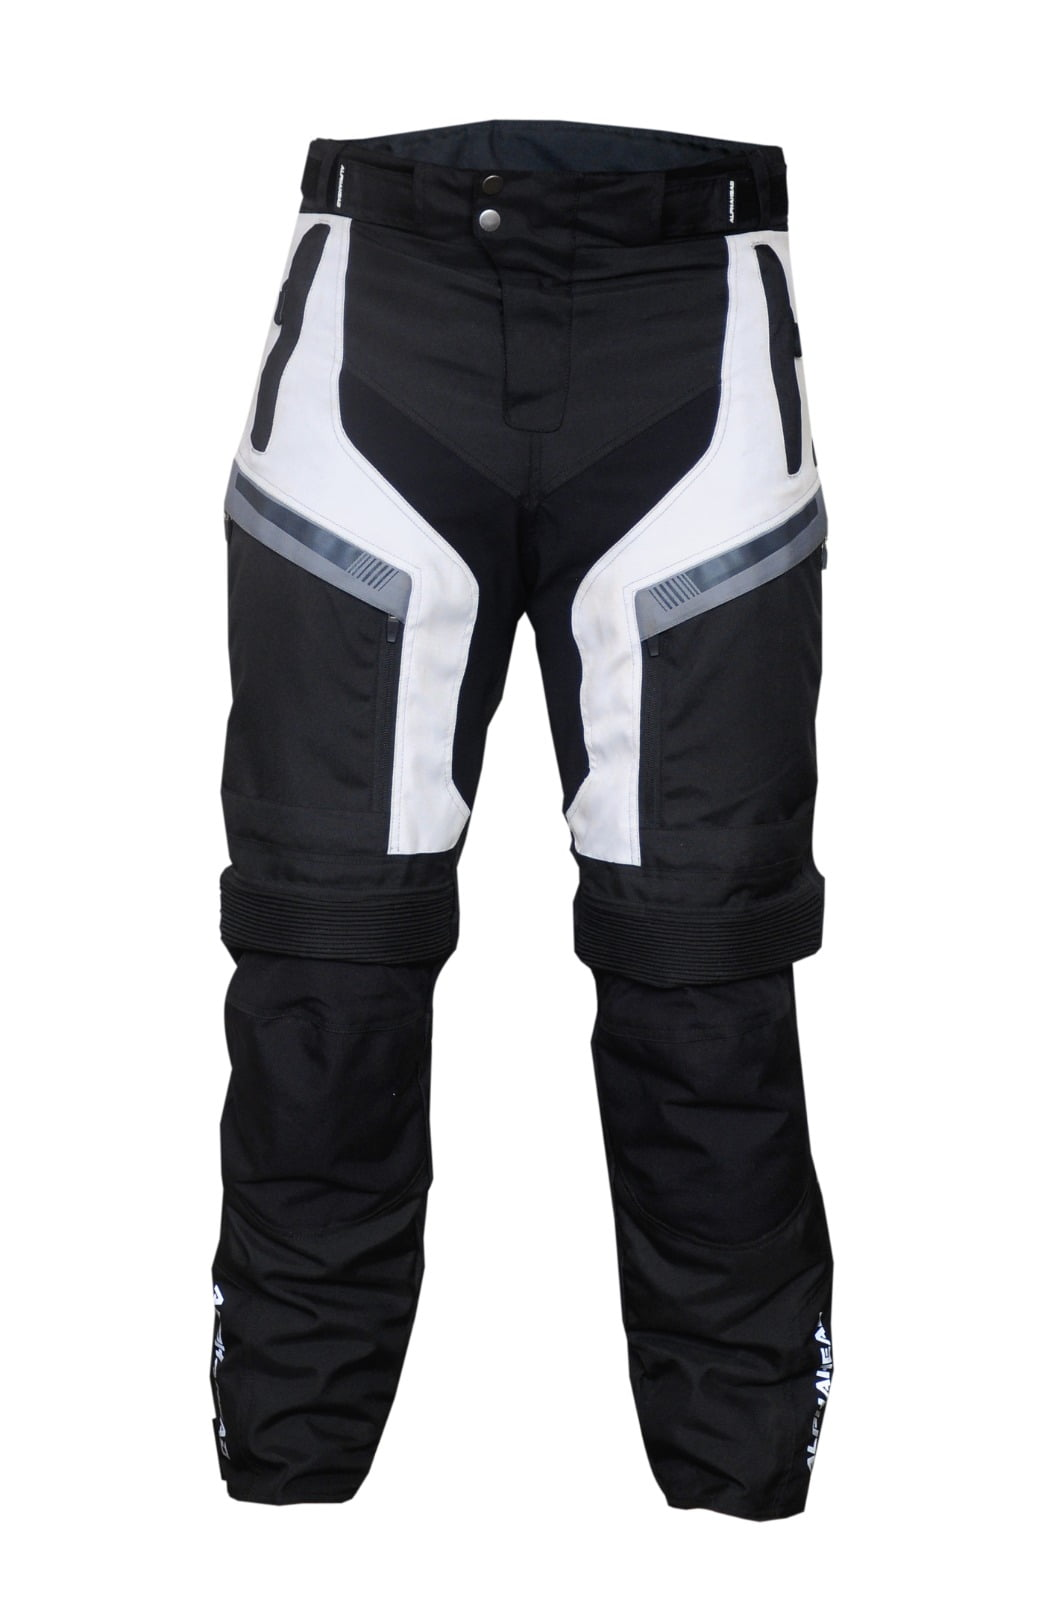 Motorcycle touring pants Alphahead Seeker